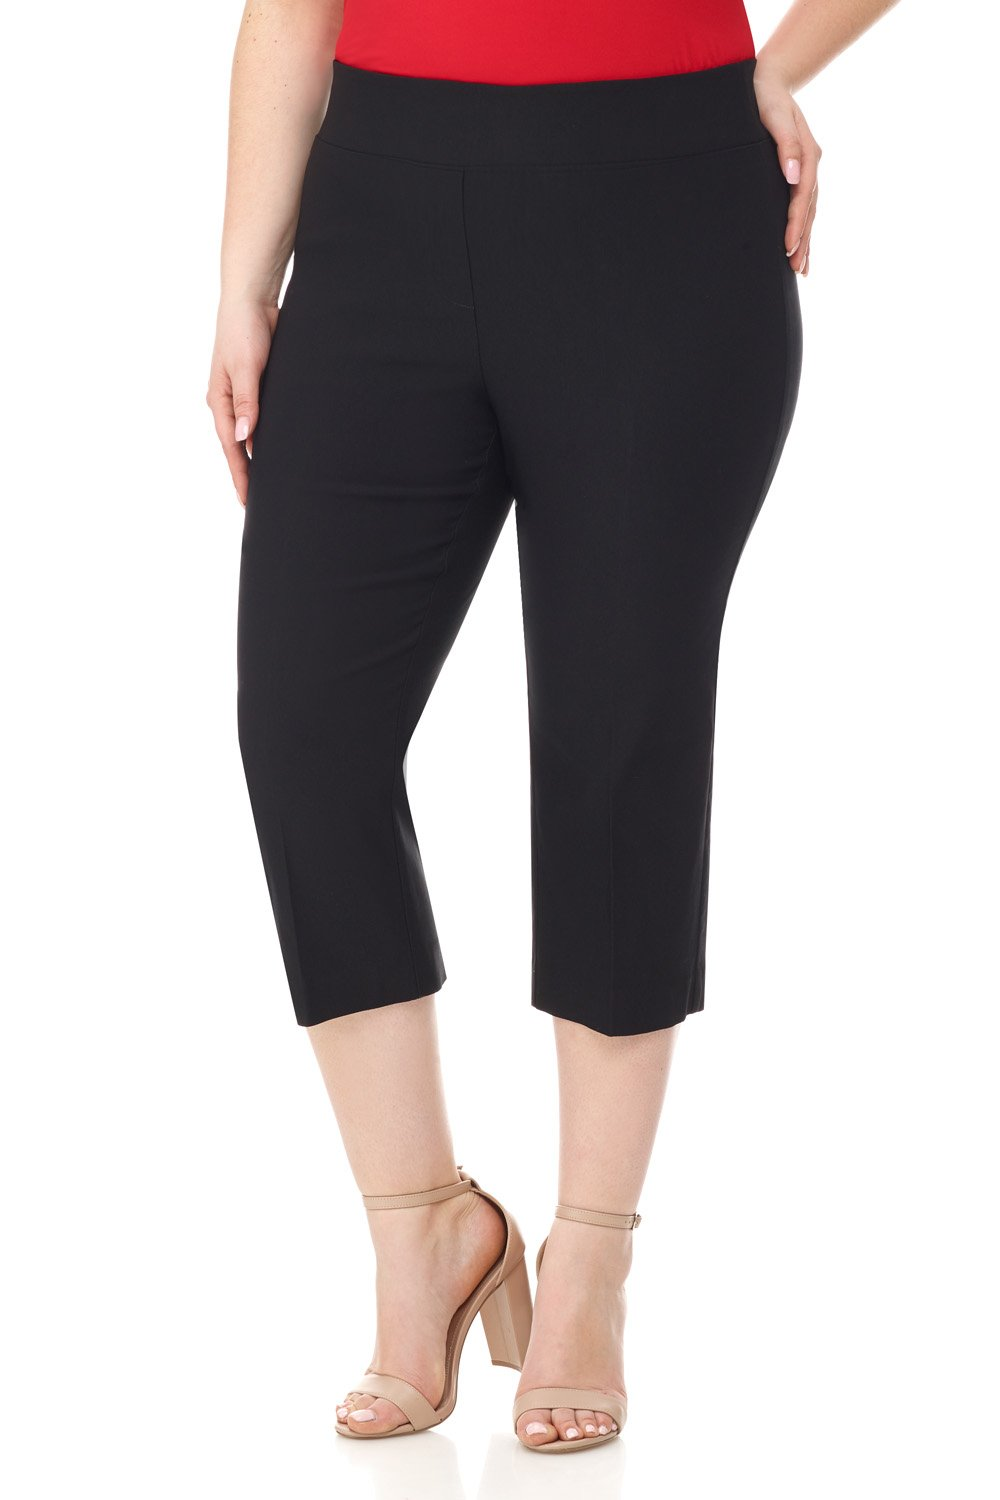 Rekucci Curvy Woman Plus Size Classic Wide Waist Flattering Fit Capri (20W,Black) by Rekucci